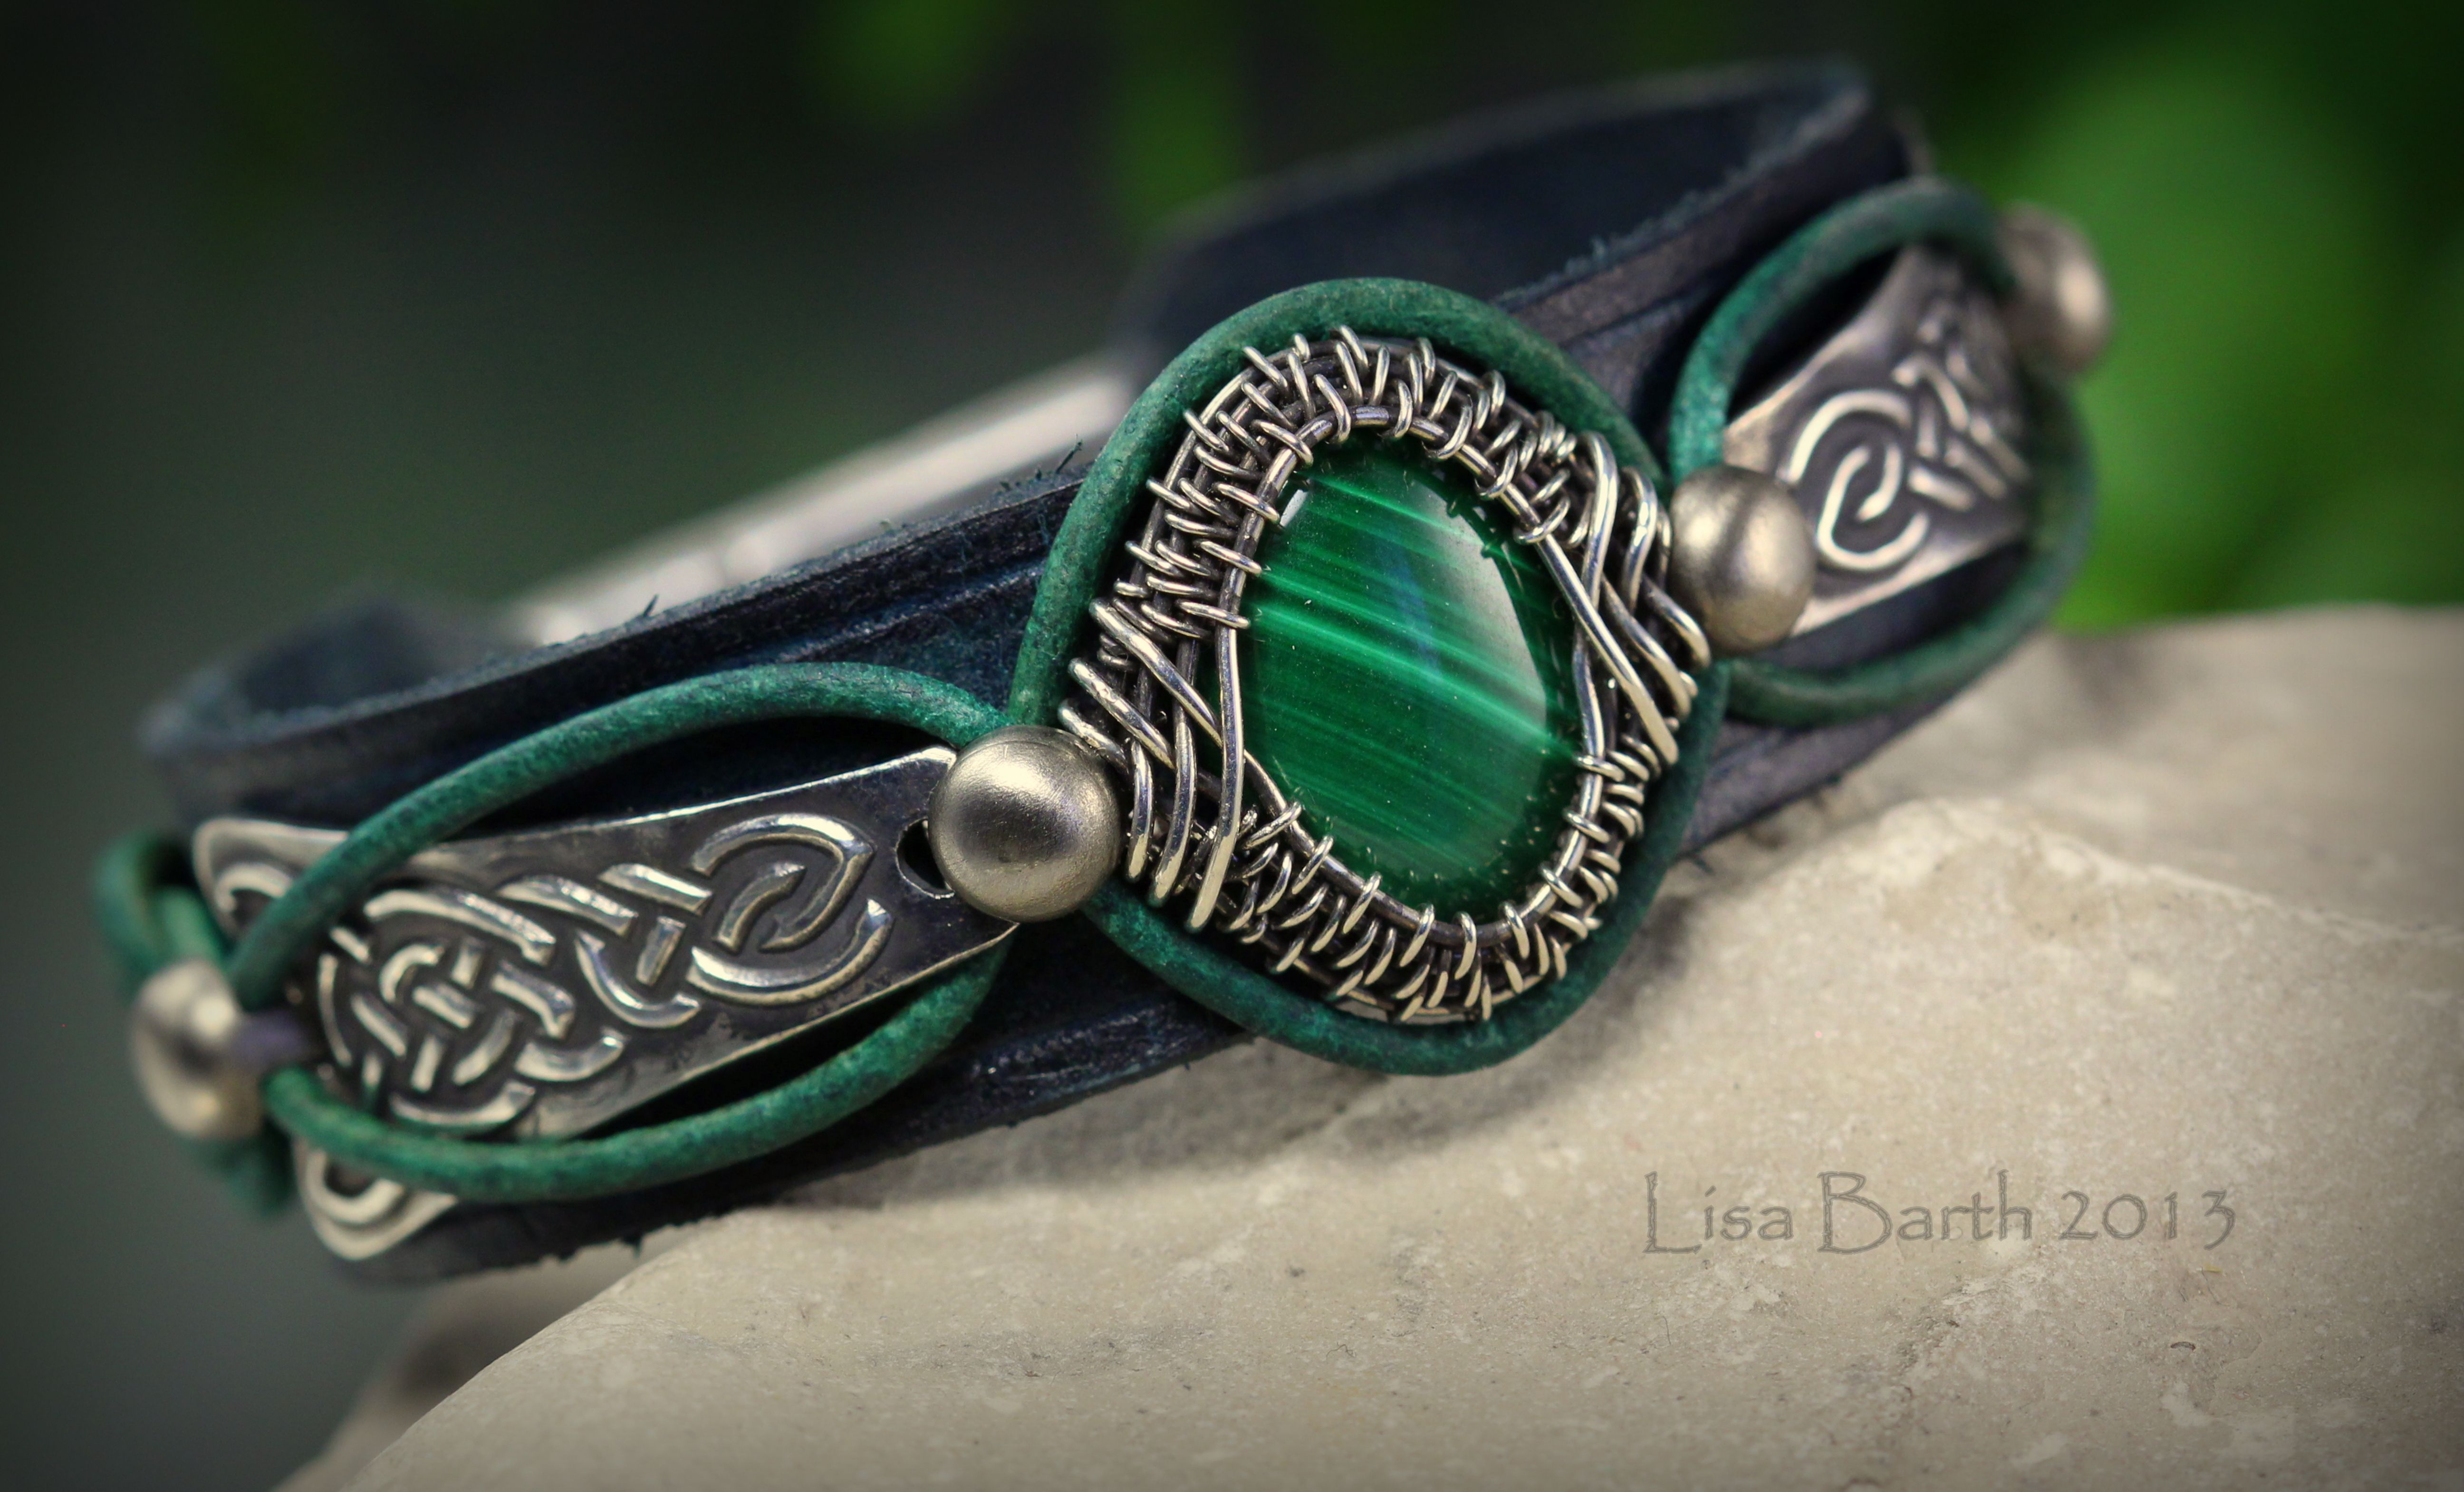 This one is a combination of hand dyed leather, metal clay side pieces and wire work to hold the malachite cab in place.  I am finding it interesting to mix mediums. --Lisa Barth